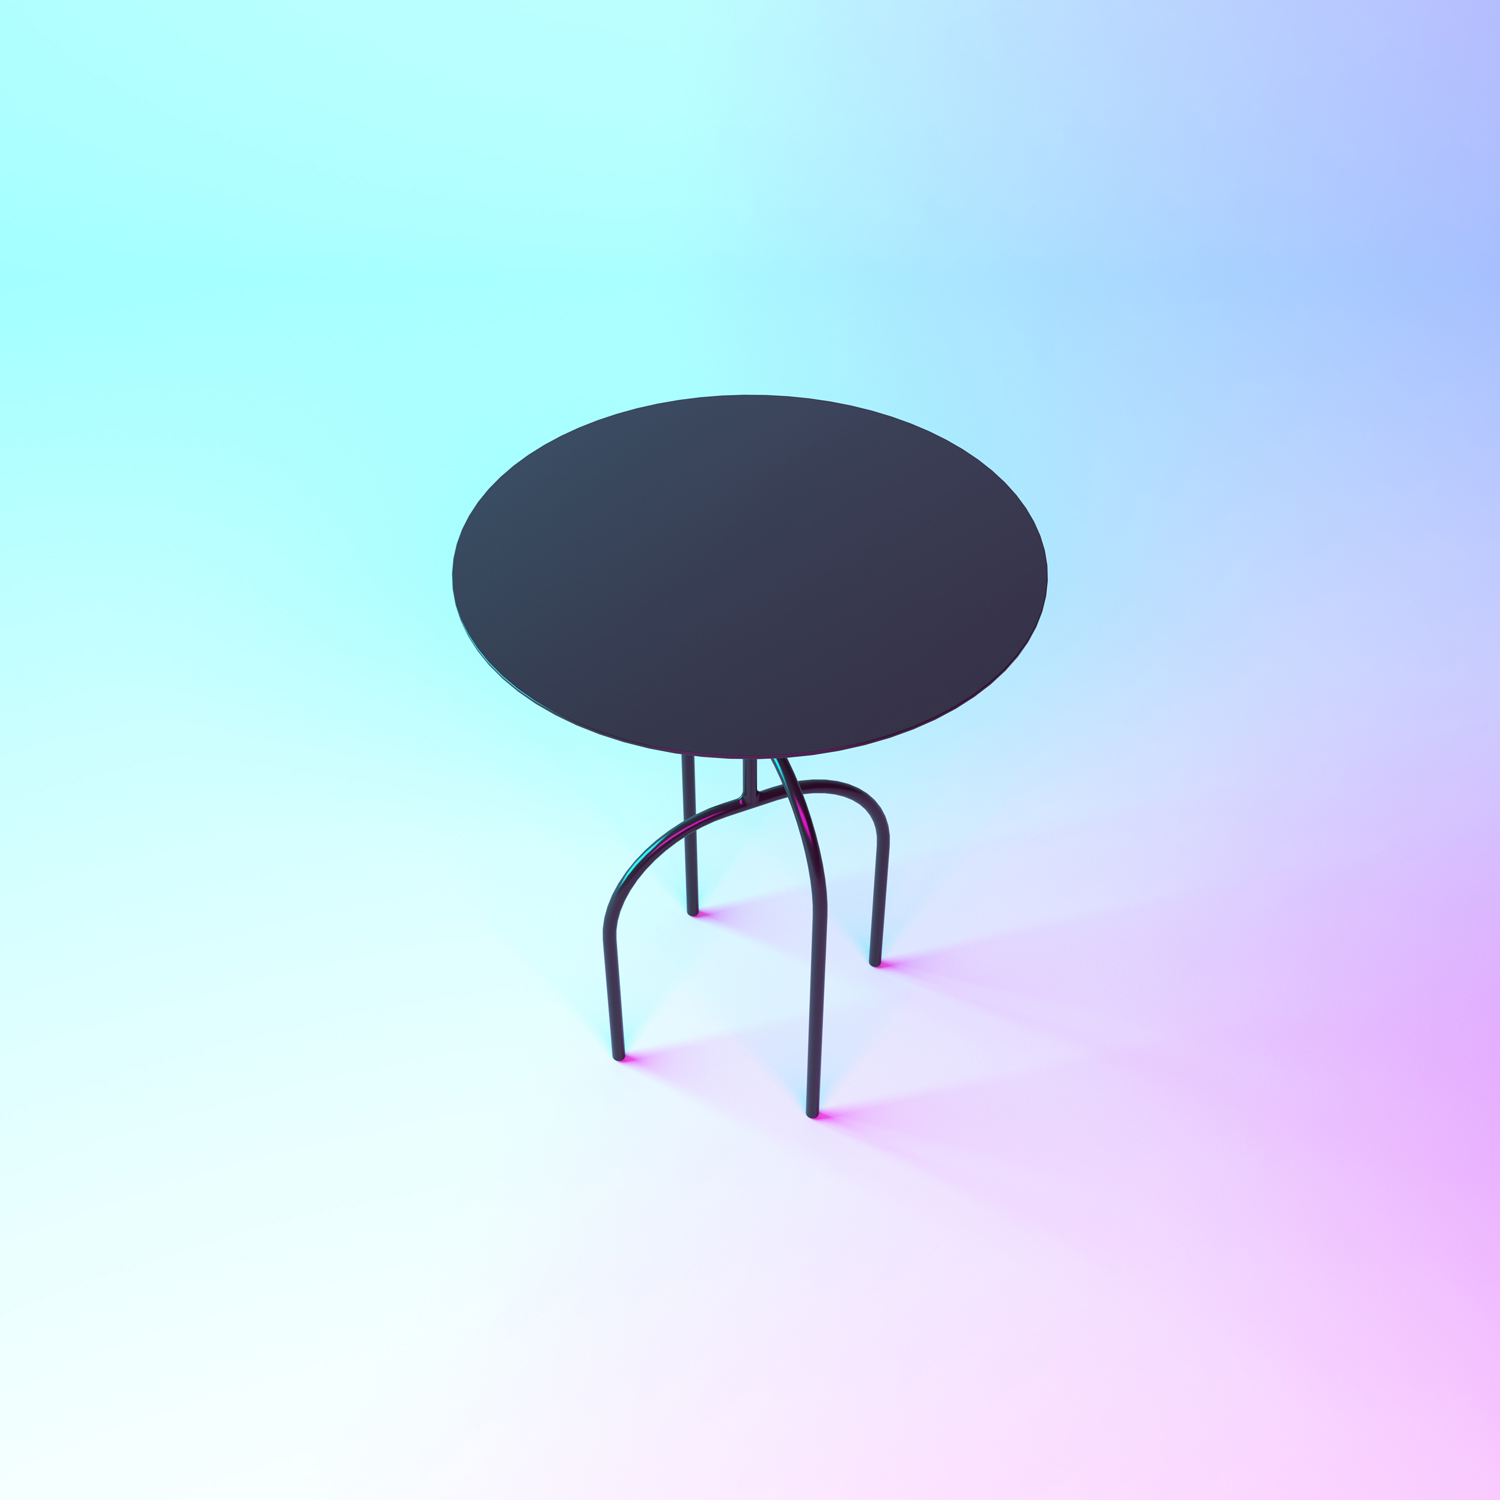 Moáa Table by Pedro Paulo Venzon for OBJEKTO | Yellowtrace